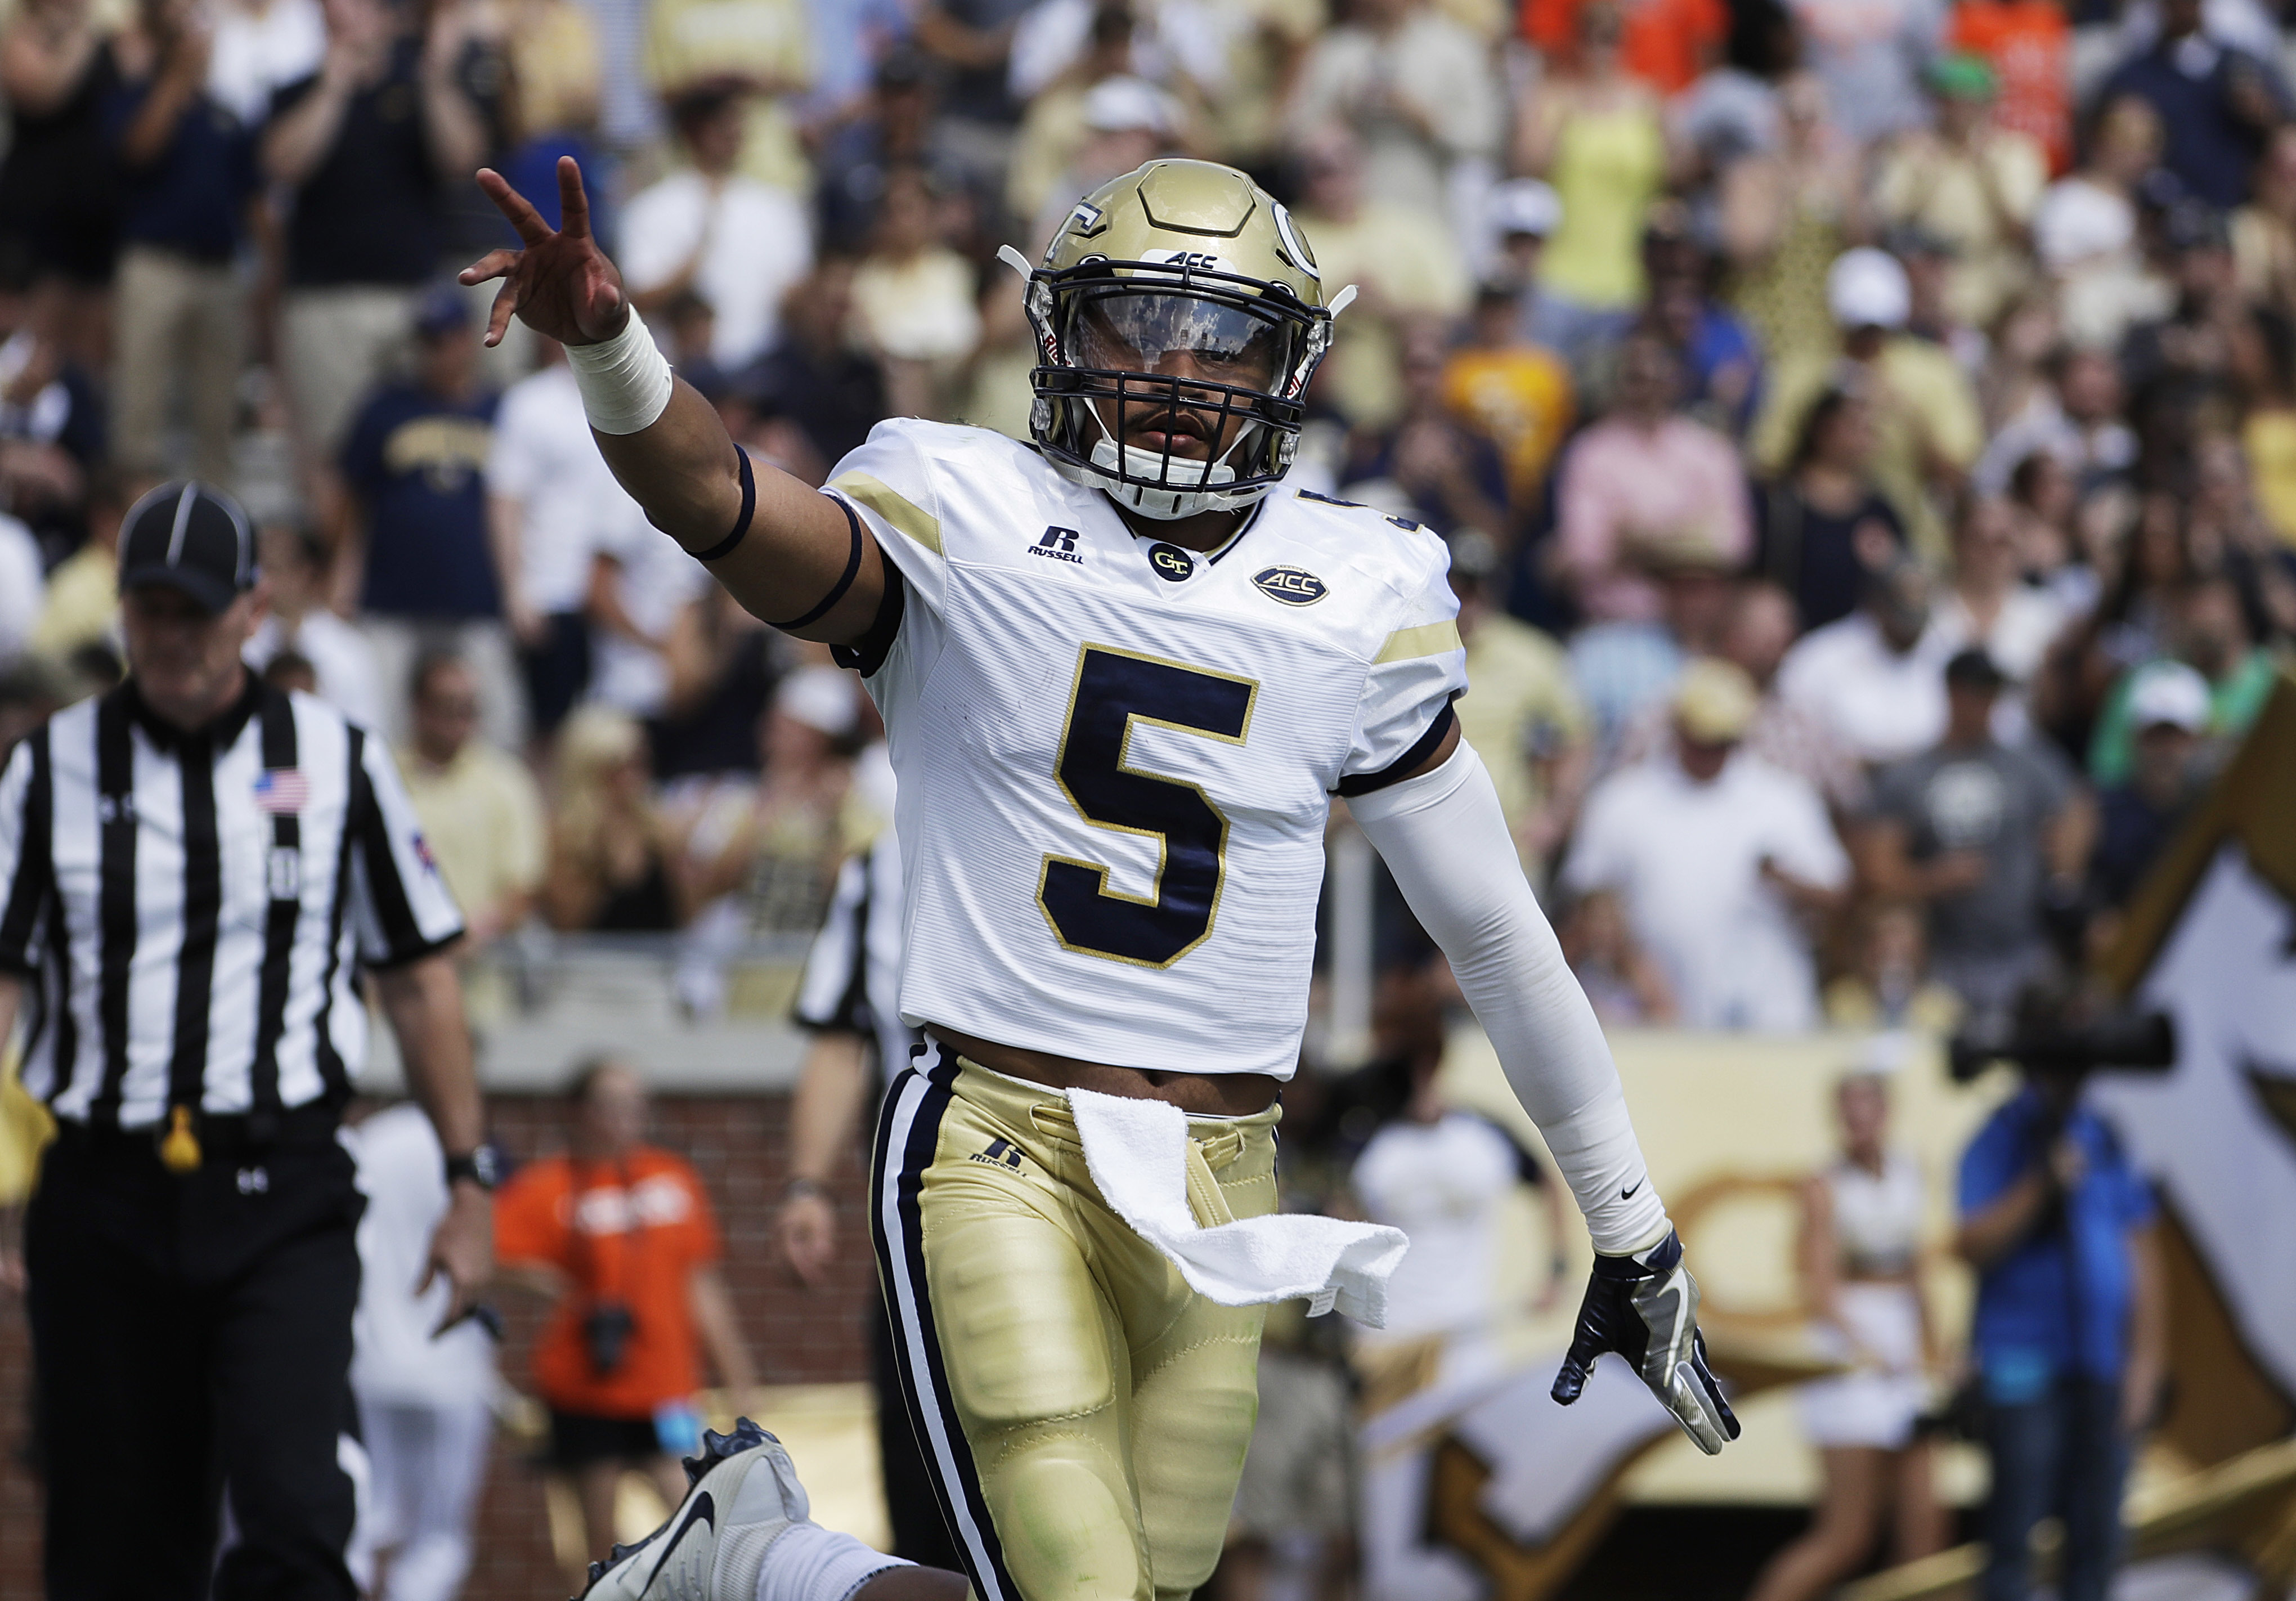 Georgia Tech quarterback Justin Thomas gestures to the crowd after running the ball for a touchdown in the first half of an NCAA college football game against Mercer in Atlanta, Saturday, Sept. 10, 2016. (AP Photo/David Goldman)